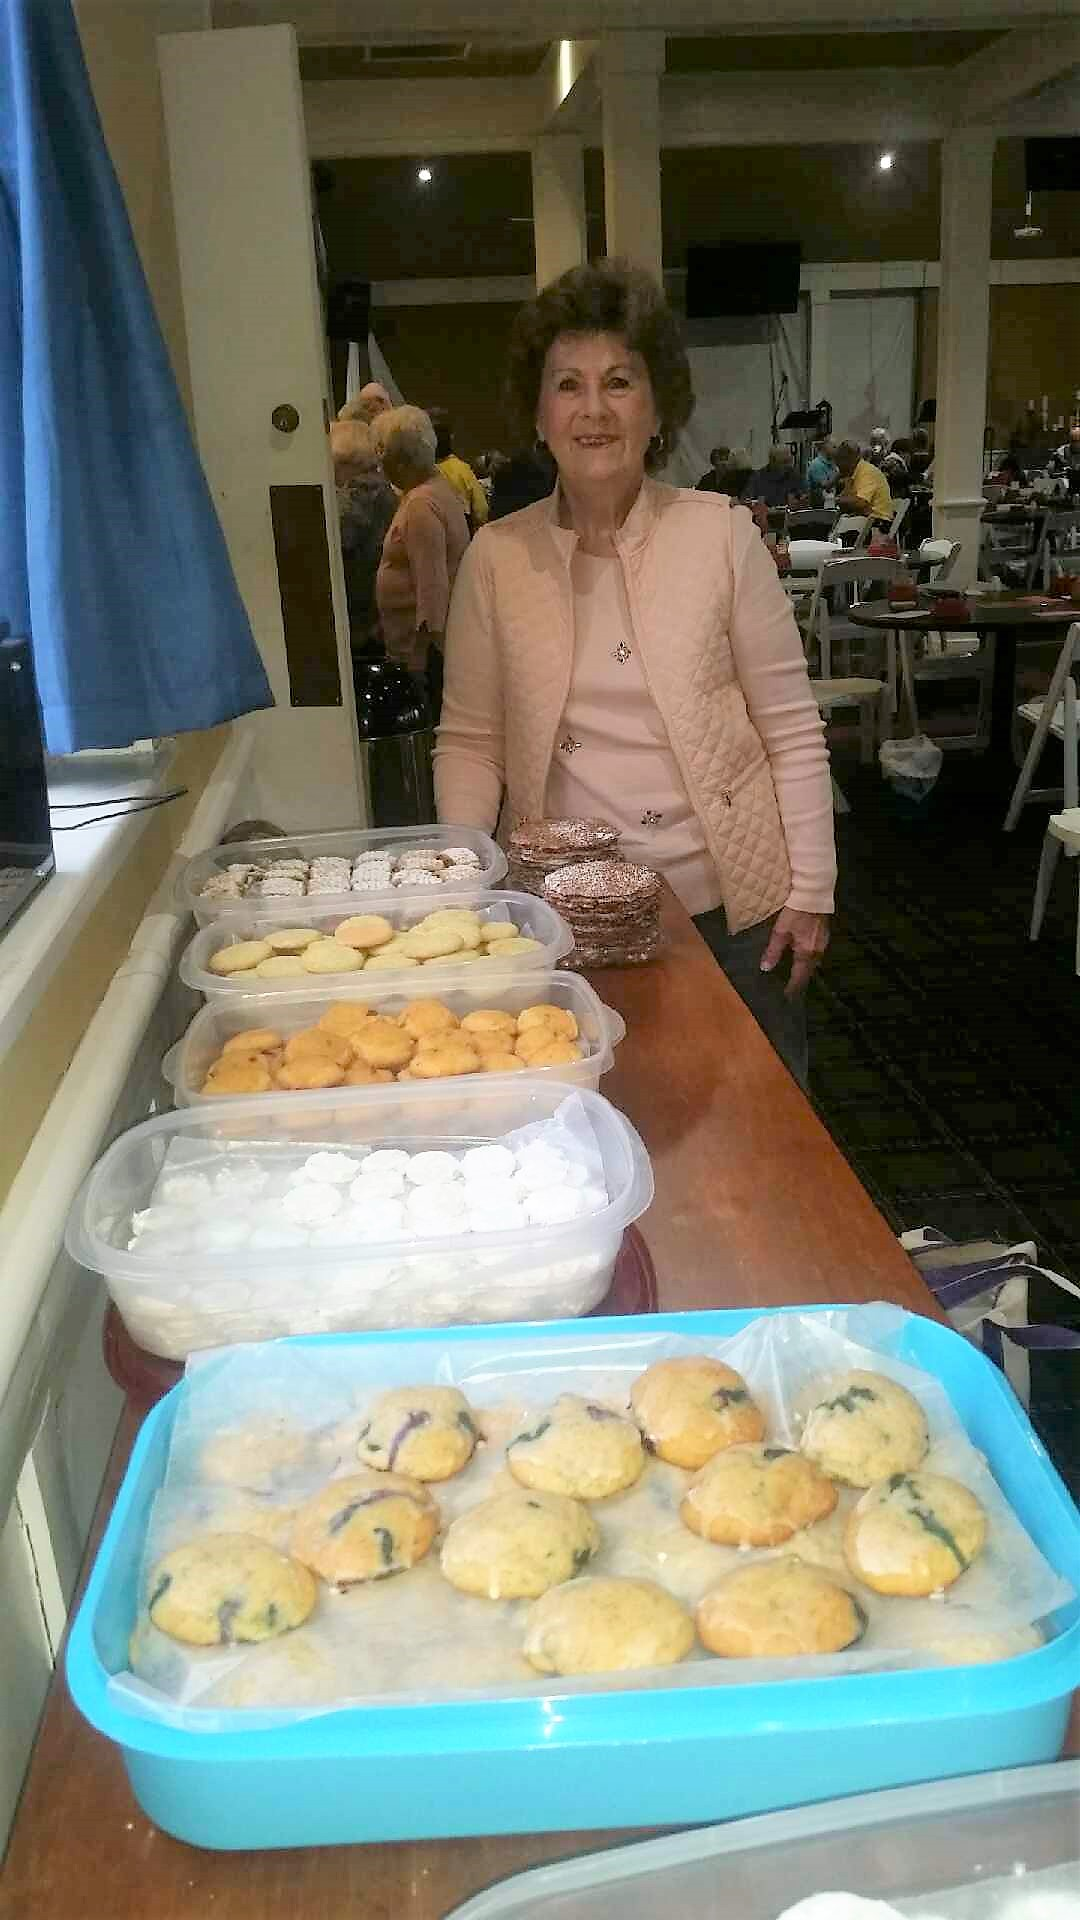 Carolyn Wolf, AKA the cookie lady